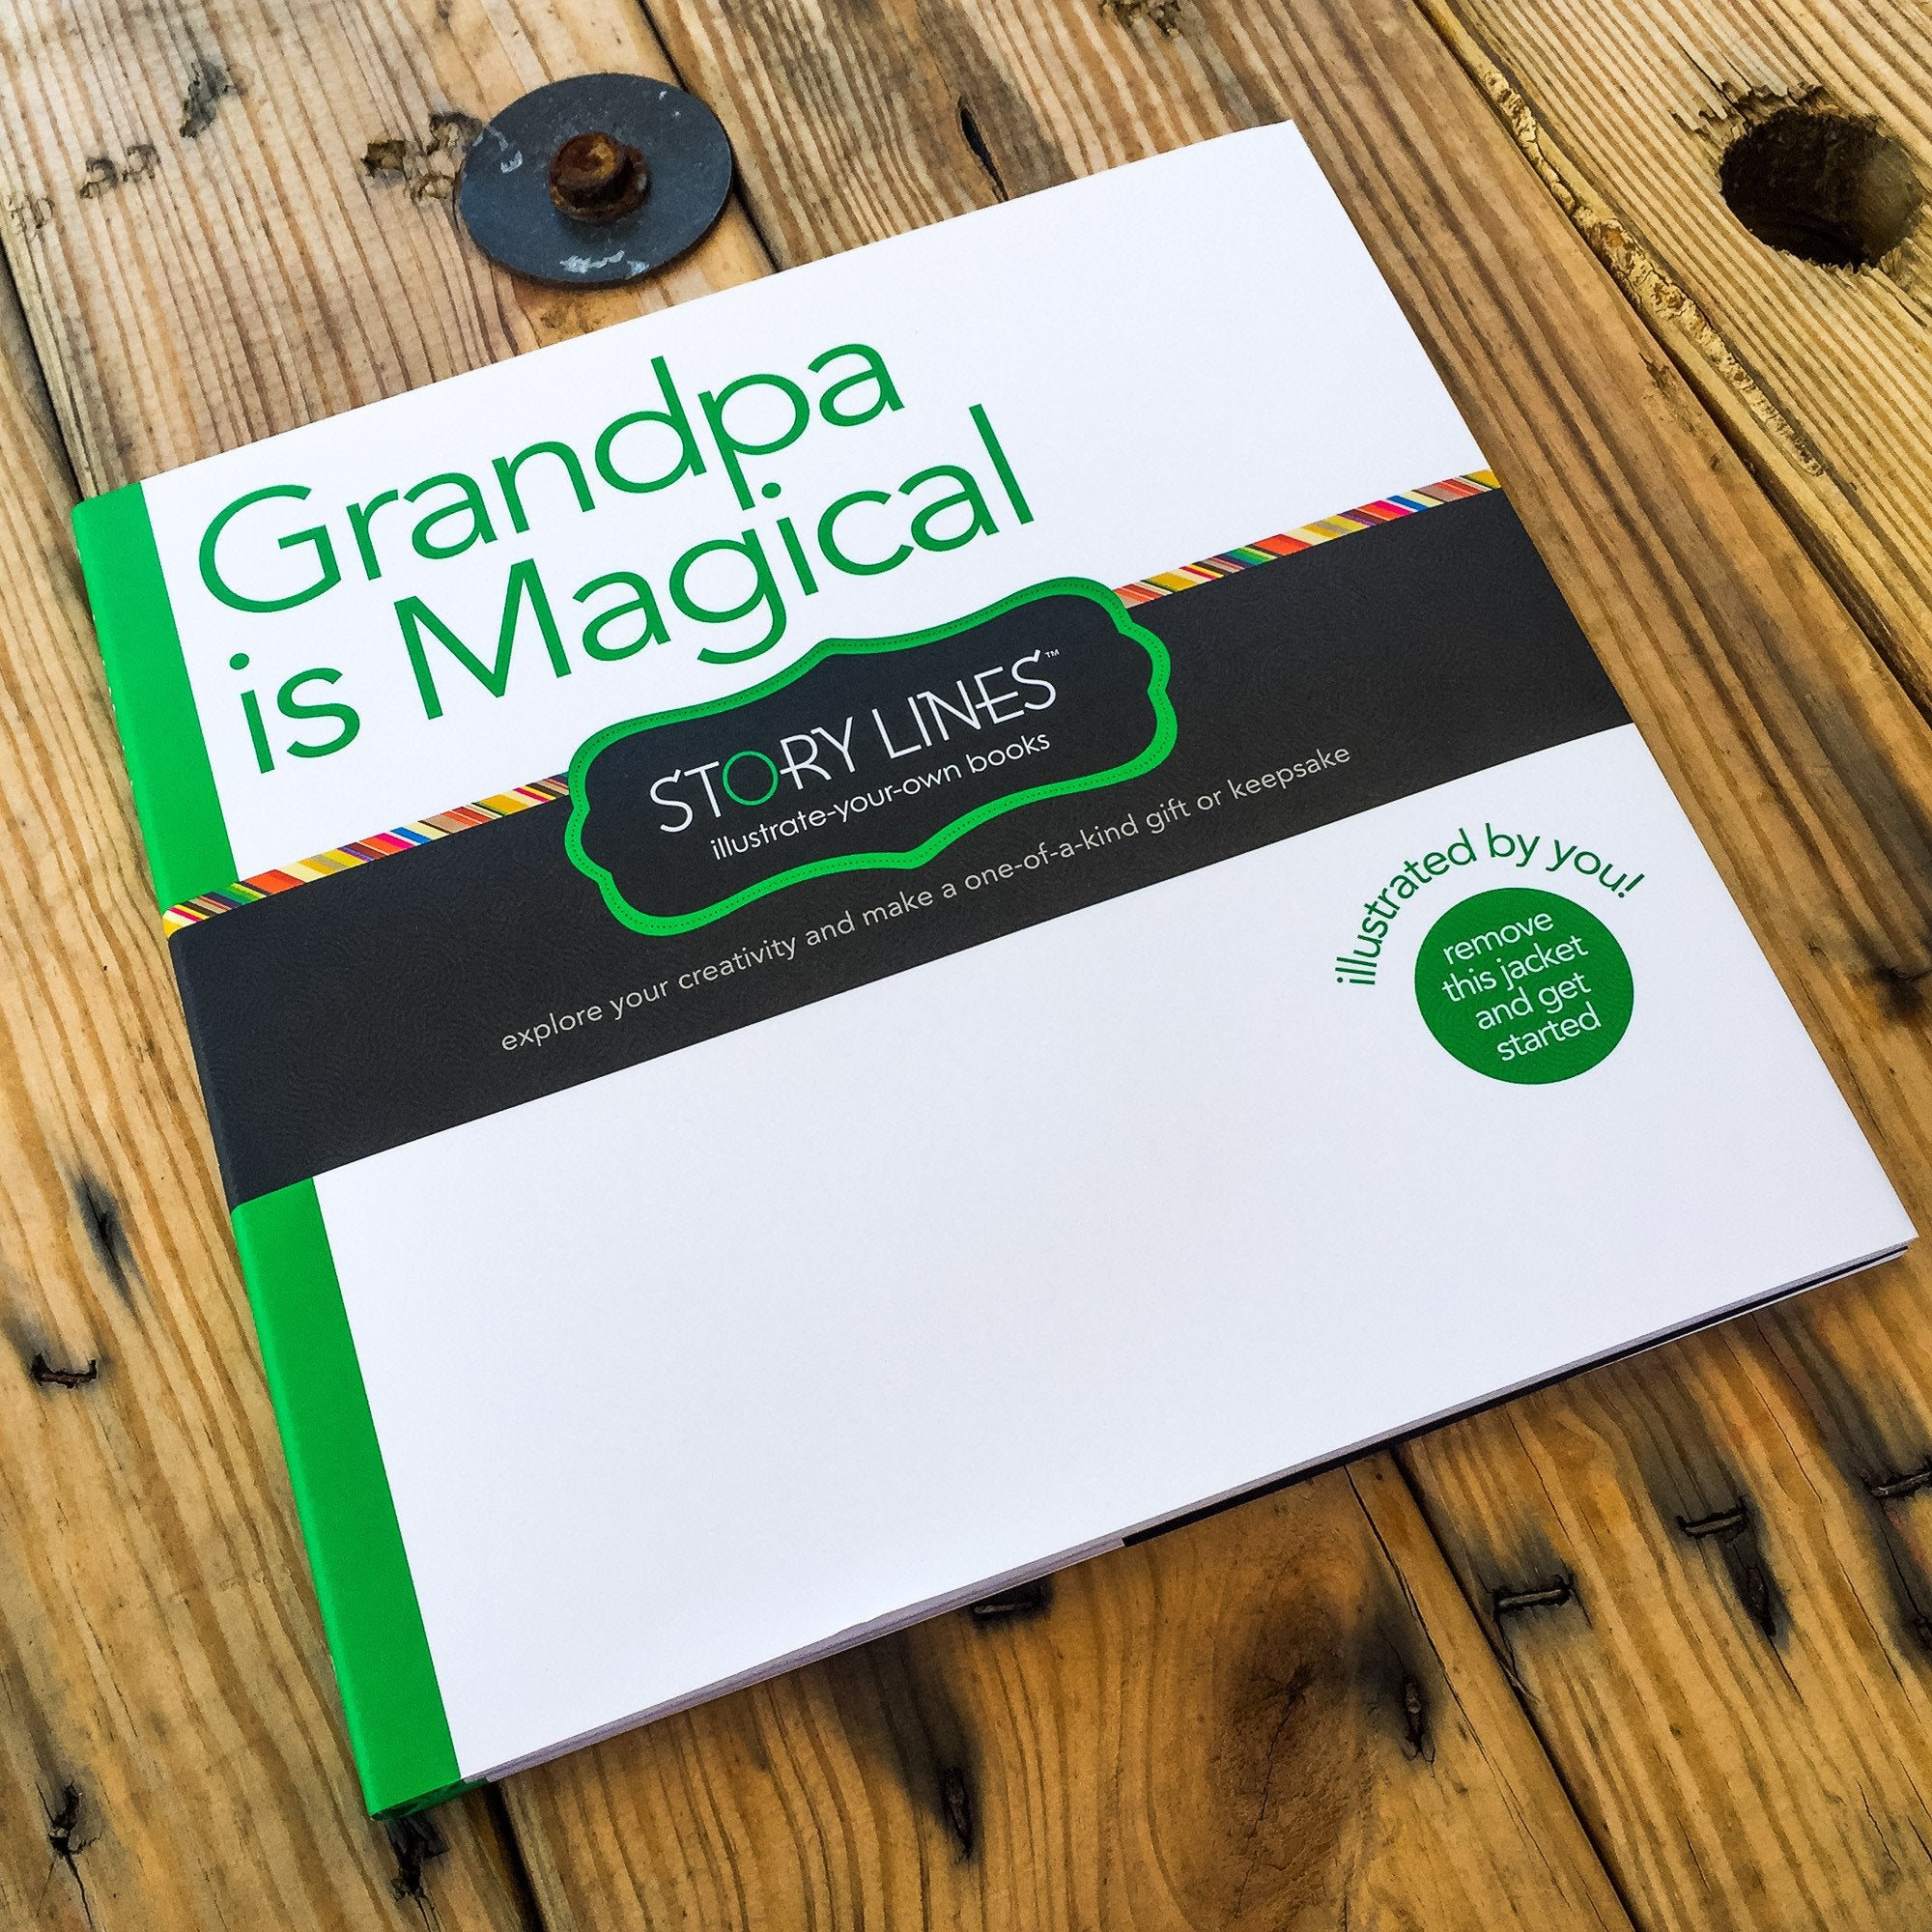 Buy Grandpa is Magical, a Storylines Gift Book from Walking Pants Curiosities, the Most un-General Gift Store in Downtown Memphis, Tennessee!